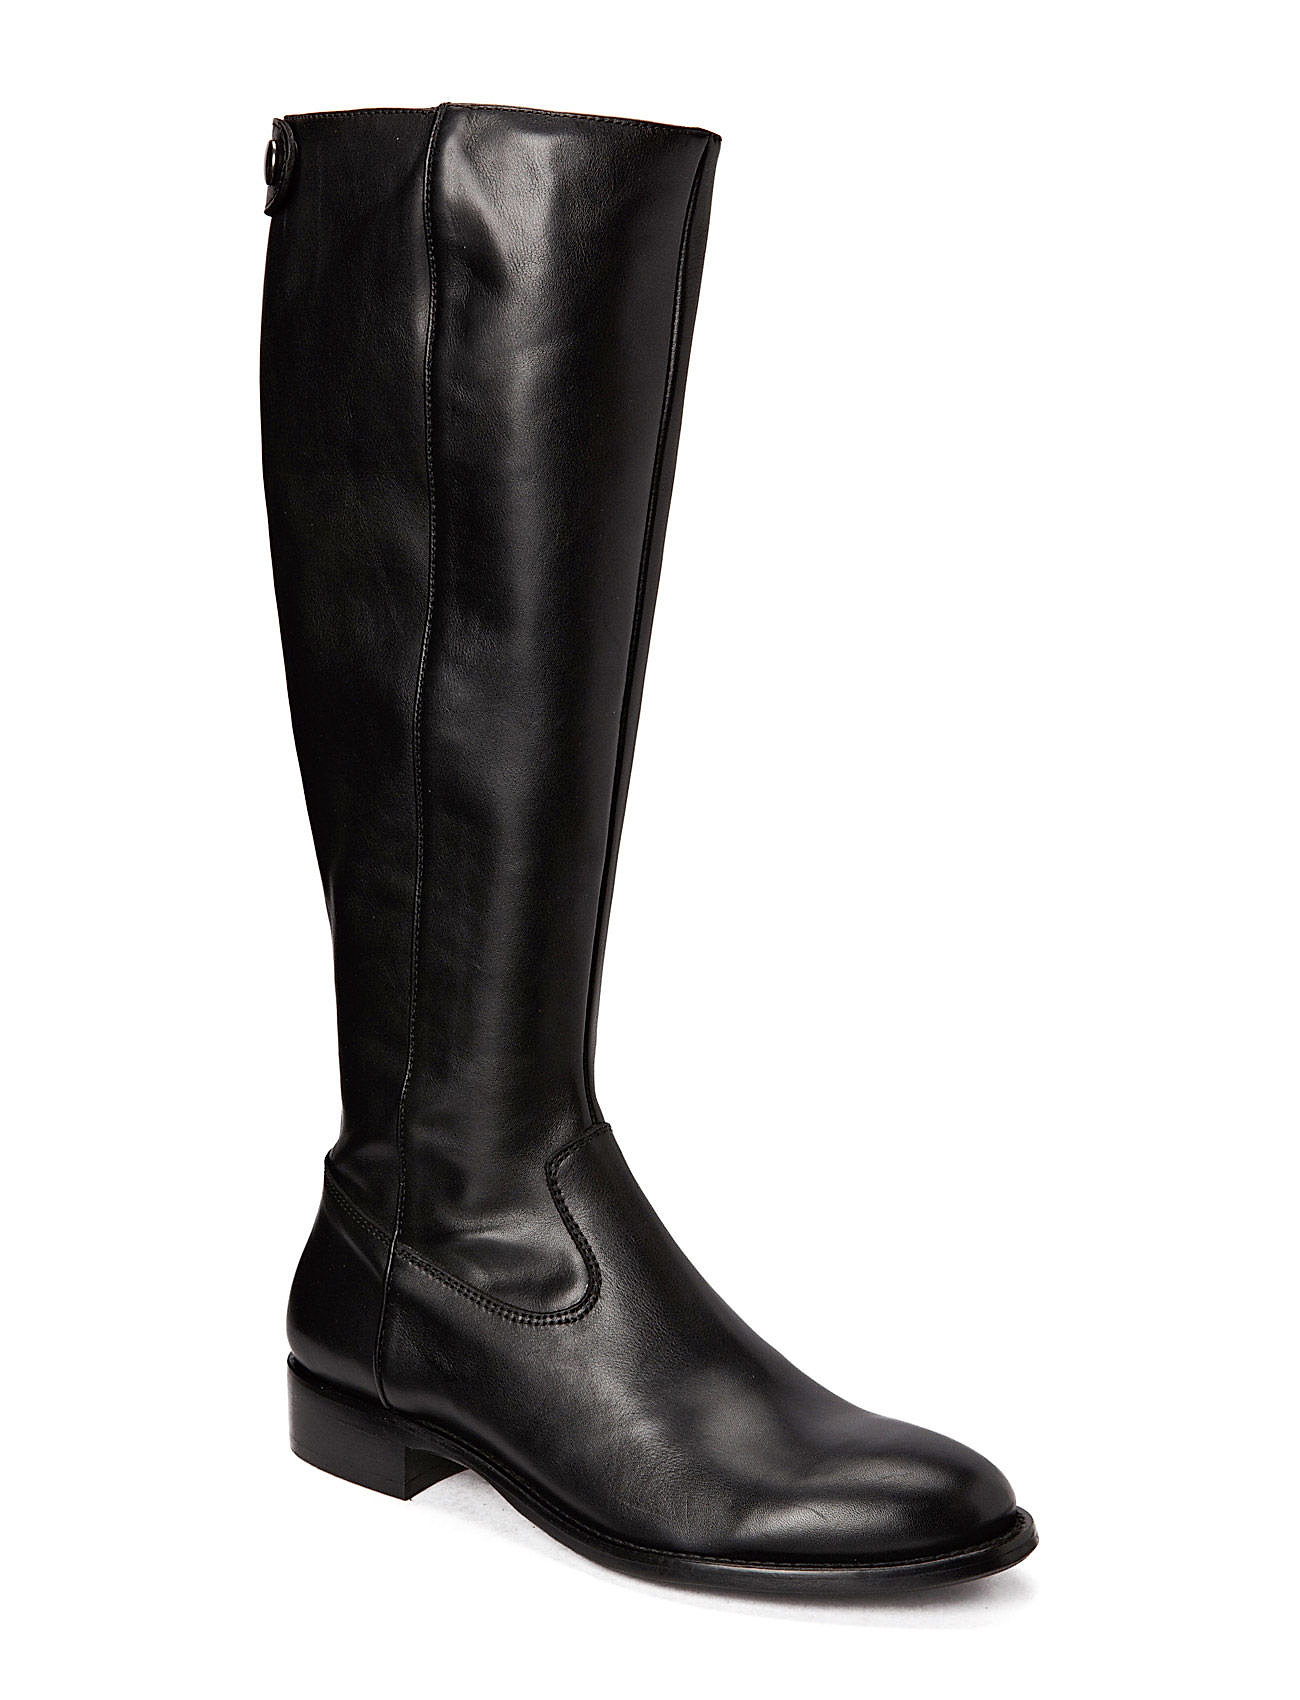 Billi Bi Long boot